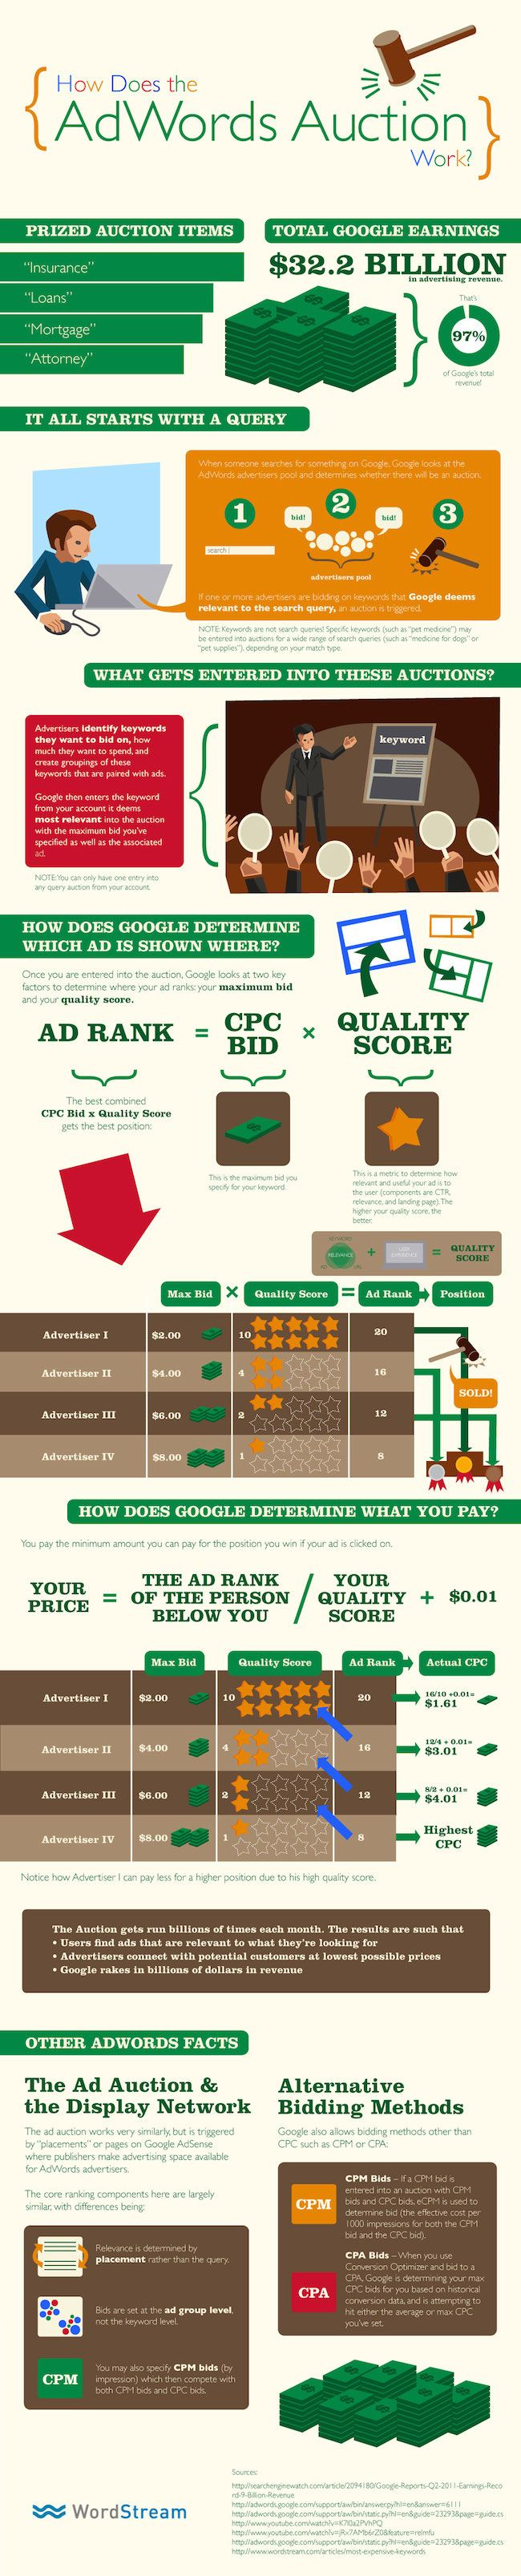 How Does Google Adwords Auction Work?? A22bf33f19813e4b6e62fdaf162b96f6